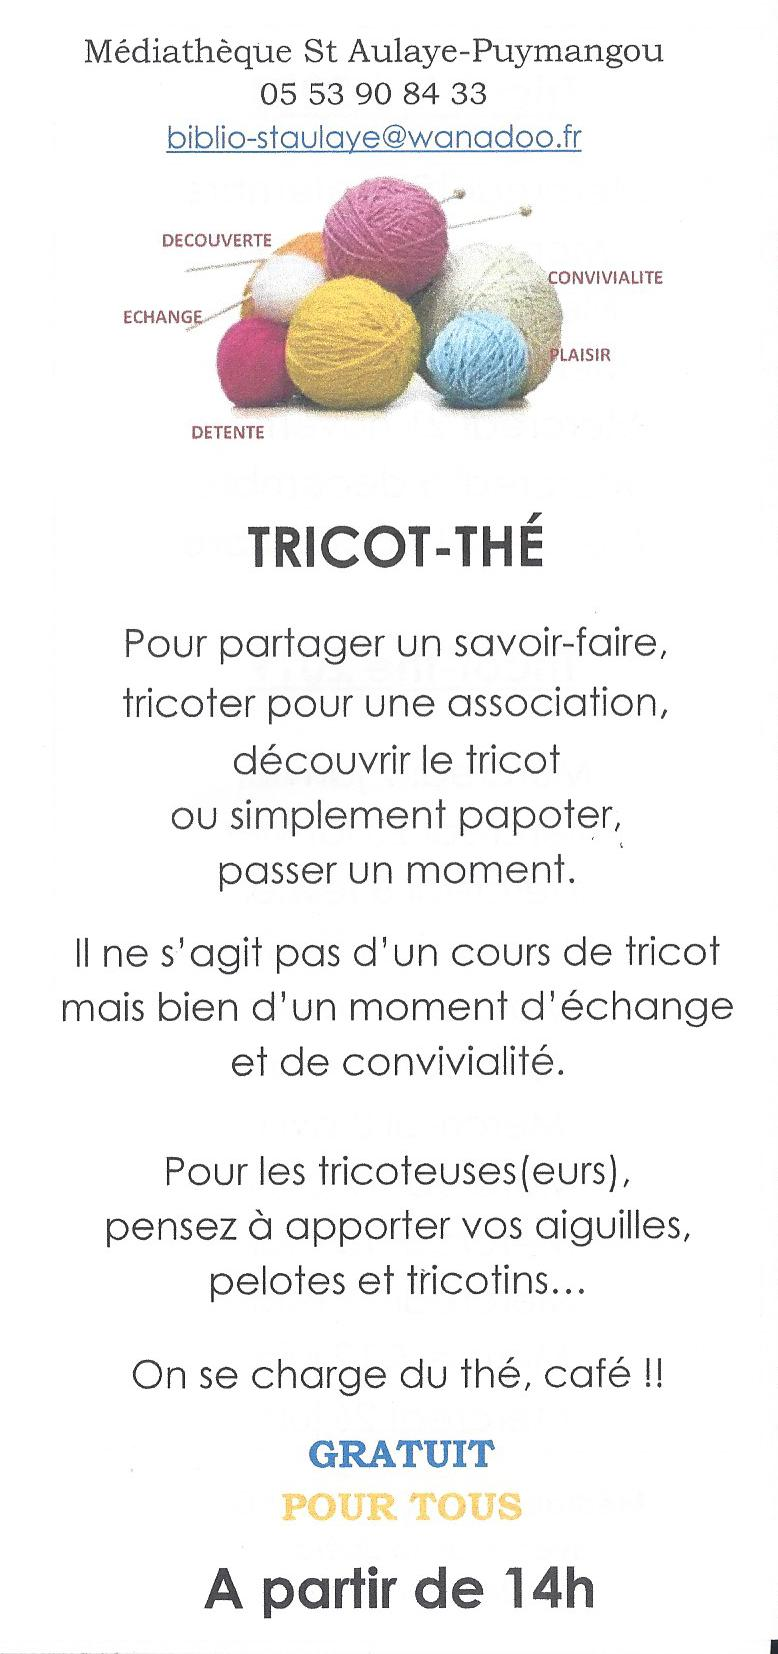 tricothe 2018 2019